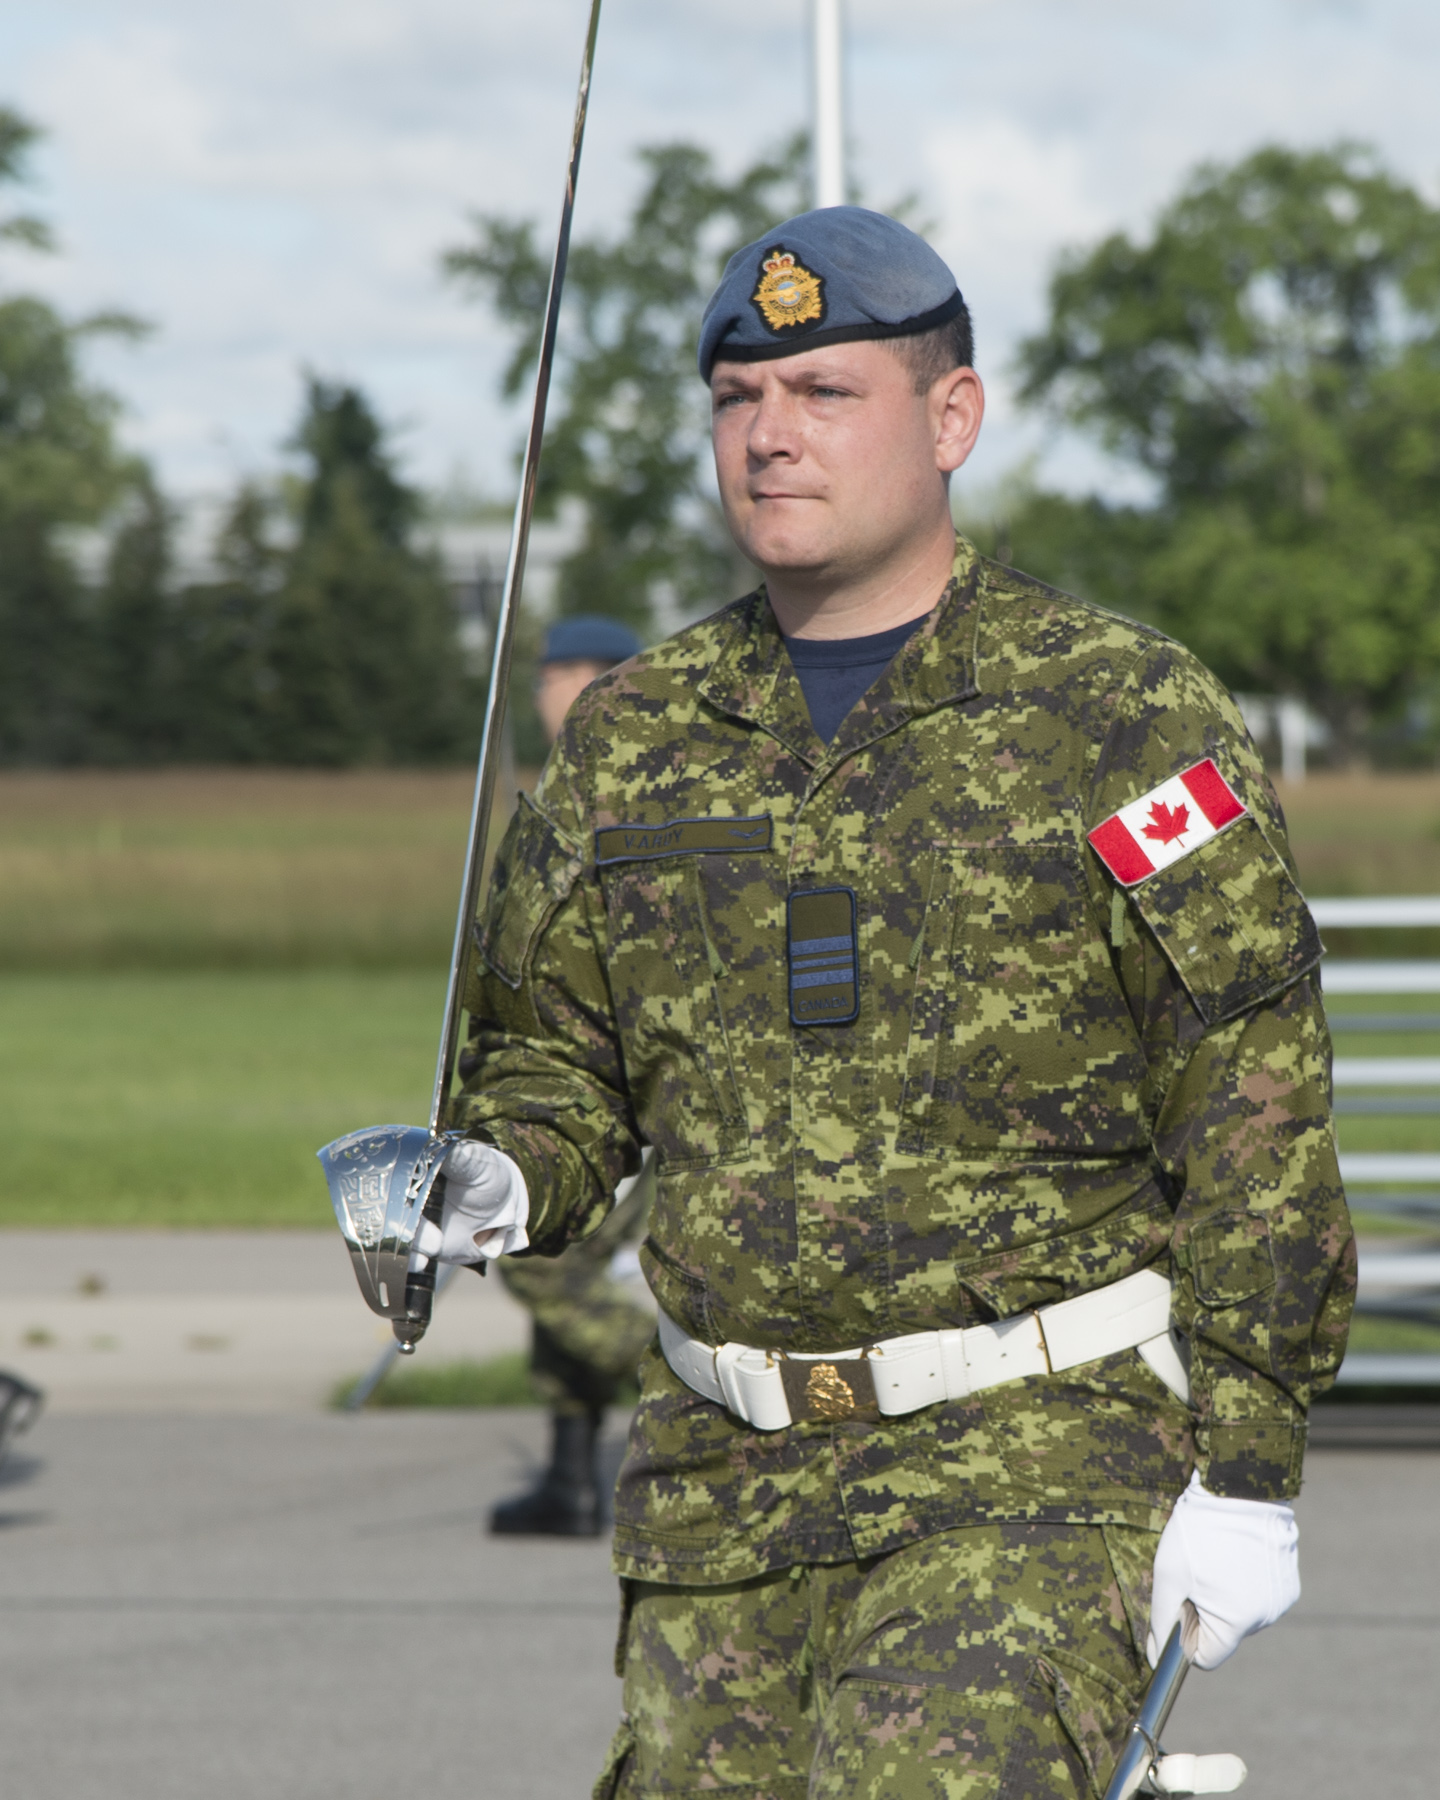 Major Gregory Vardy of 16 Wing Borden, participates in a rehearsal for the RCAF Colours presentation ceremony and parade, to be held at Nathan Phillips Square in Toronto on September 1, 2017. PHOTO: Ordinary Seaman Larissa Halldorson, BM05-2017-0220-27